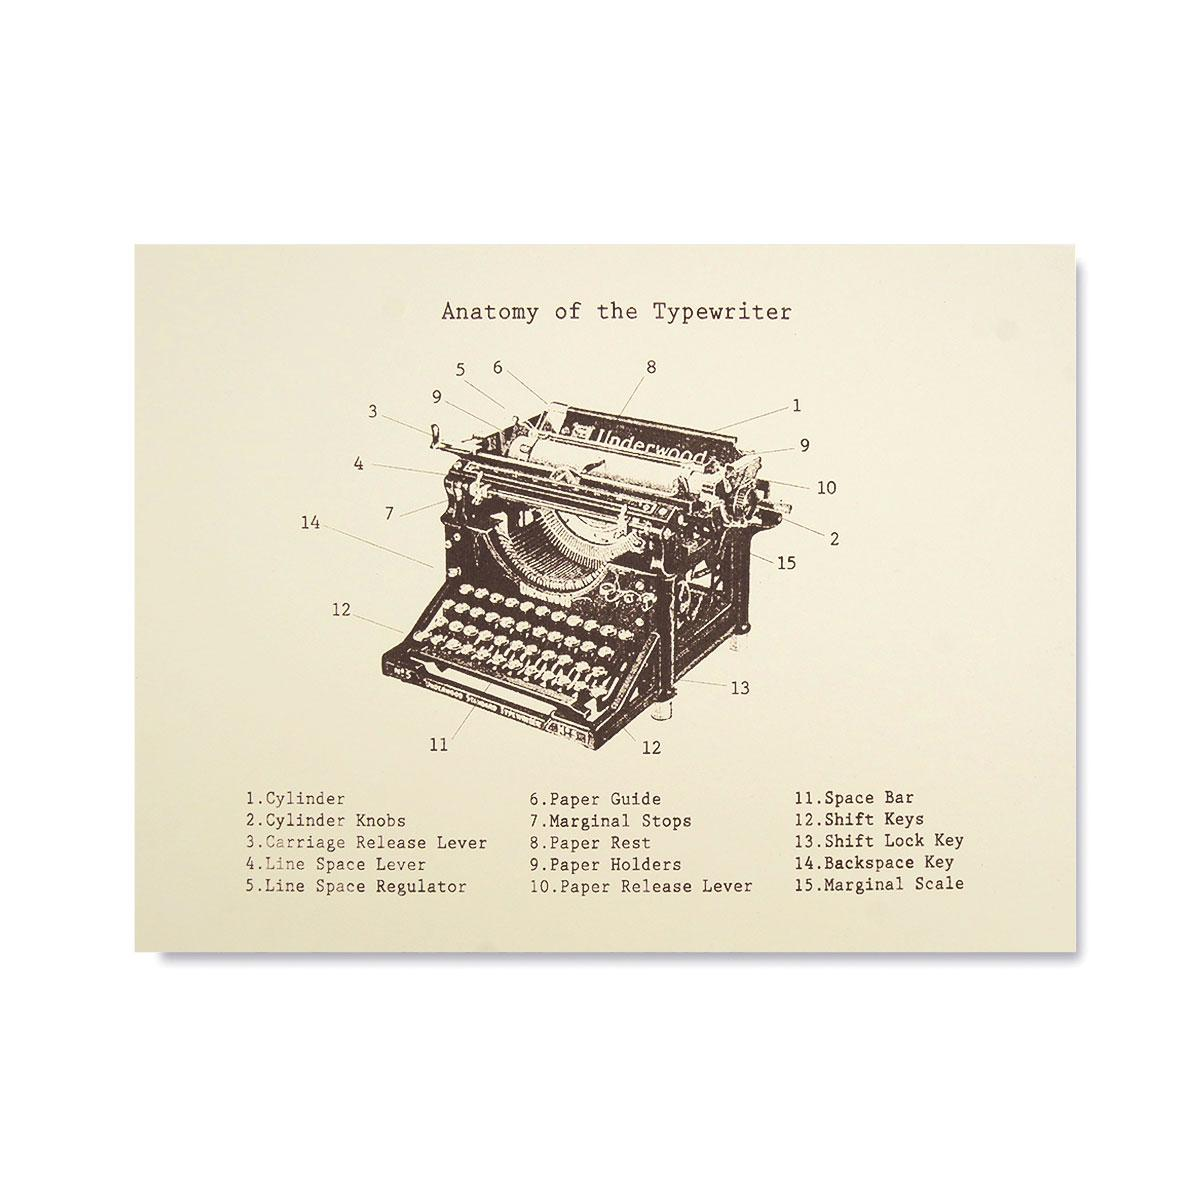 Kid Icarus -POSTER- Anatomy of the Typewriter